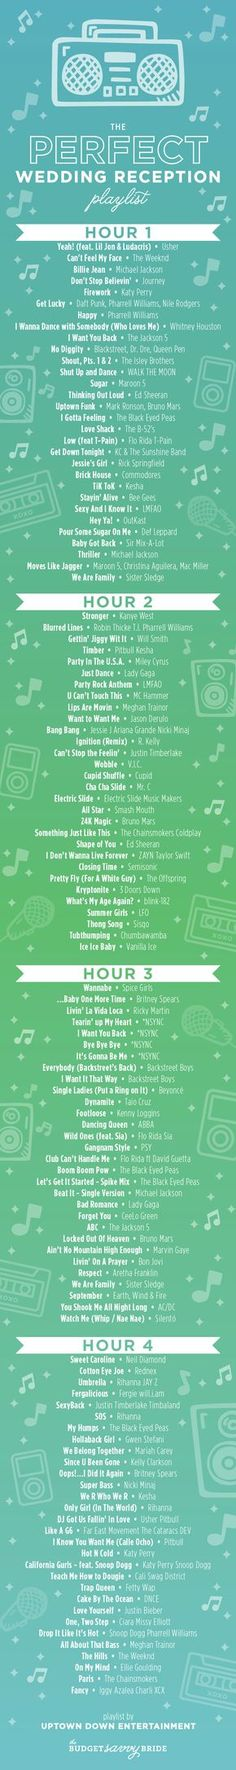 The Perfect Wedding Reception Playlist -- so epic!!!